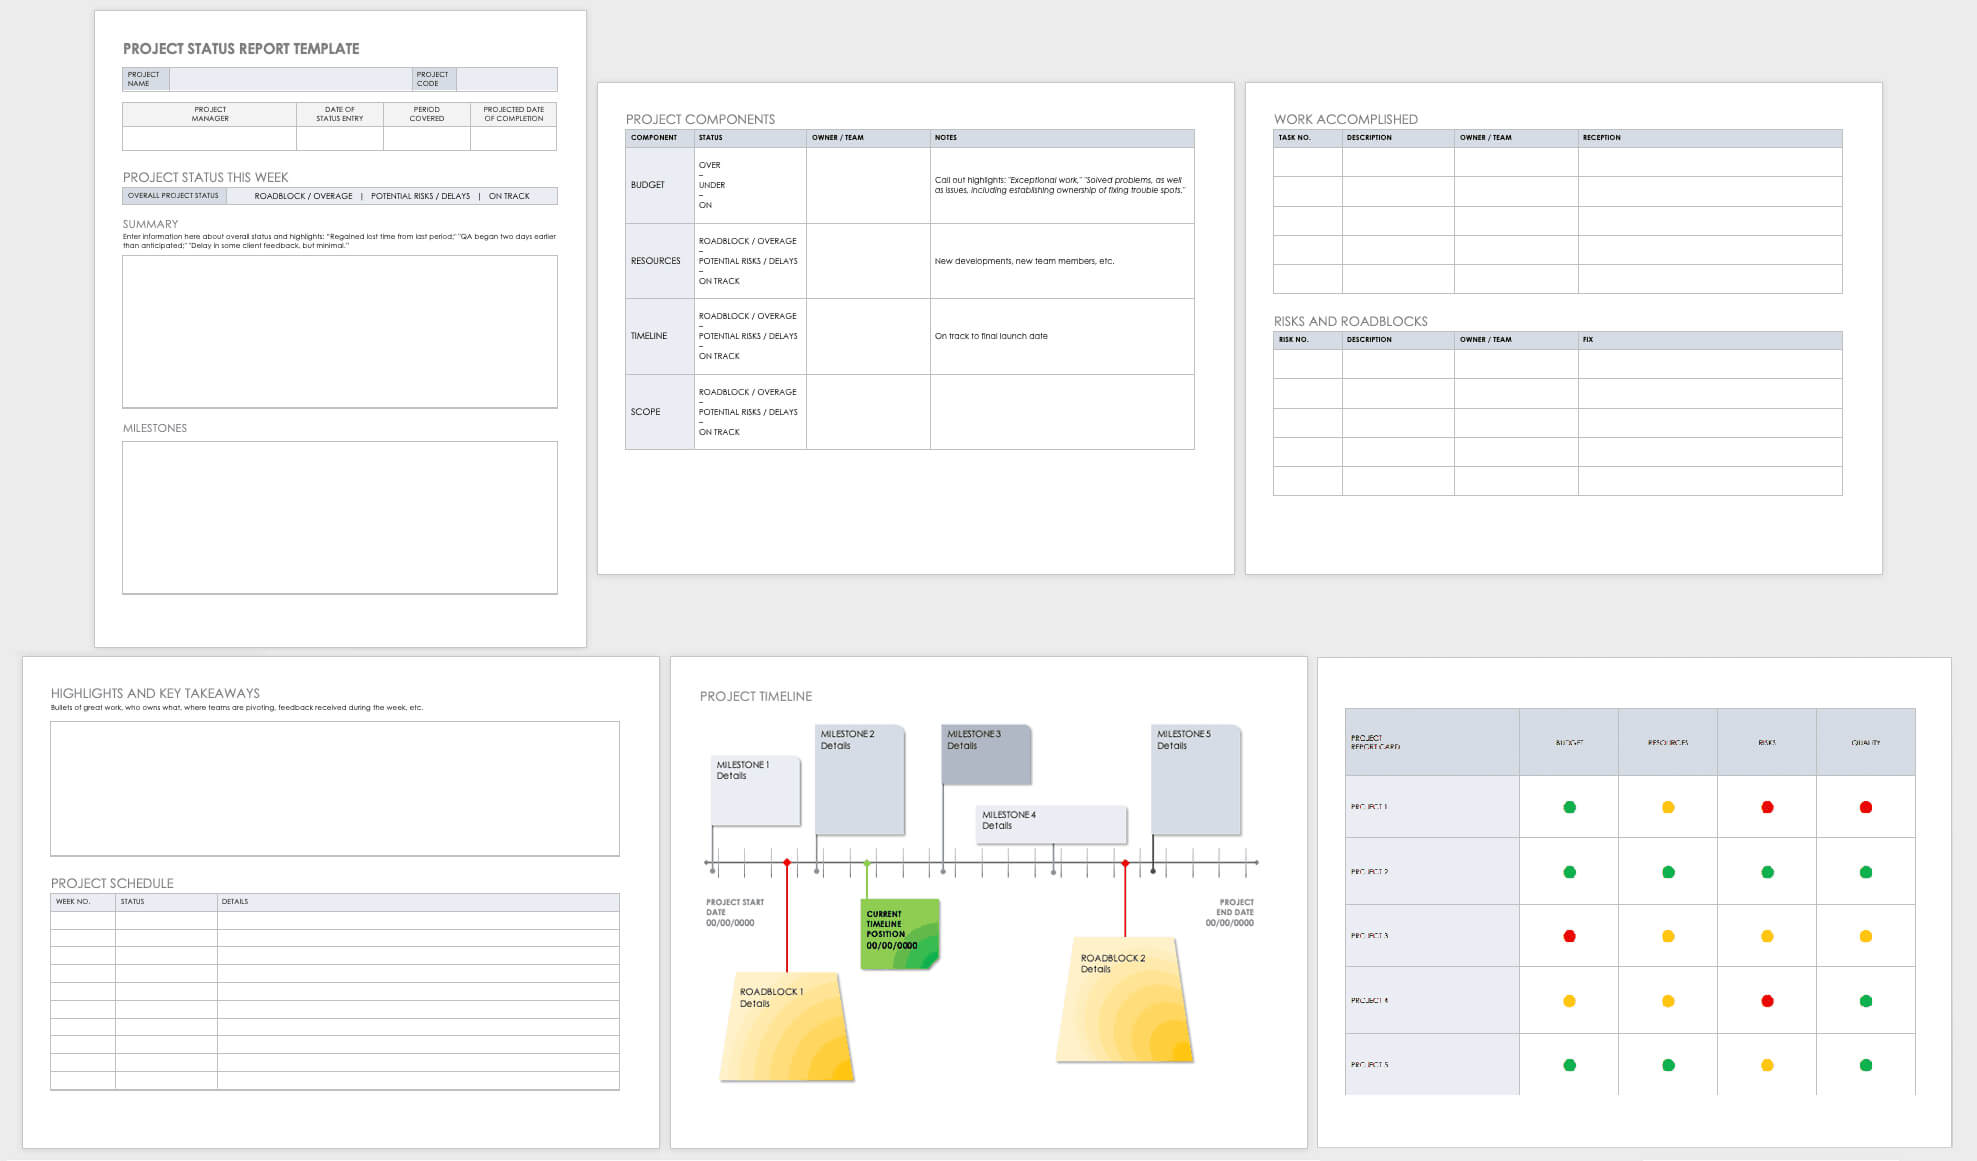 Free Project Report Templates | Smartsheet Throughout Manager Weekly Report Template